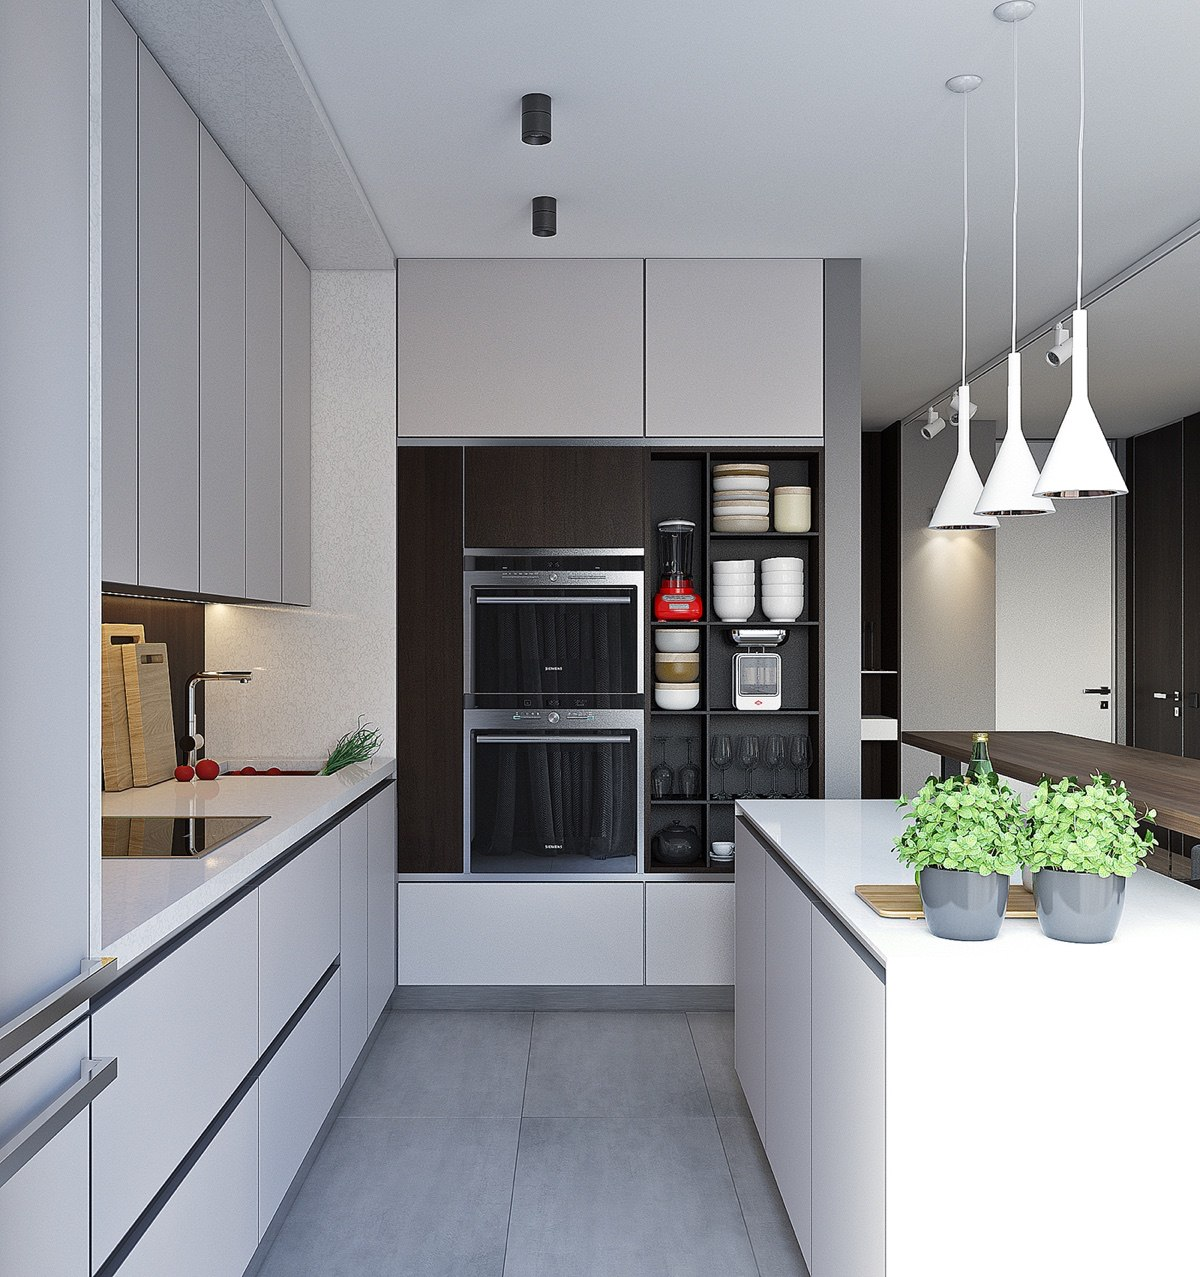 Hidden Stoves Contemporary Kitchen With White Lighting - Spacious looking one bedroom apartment with dark wood accents